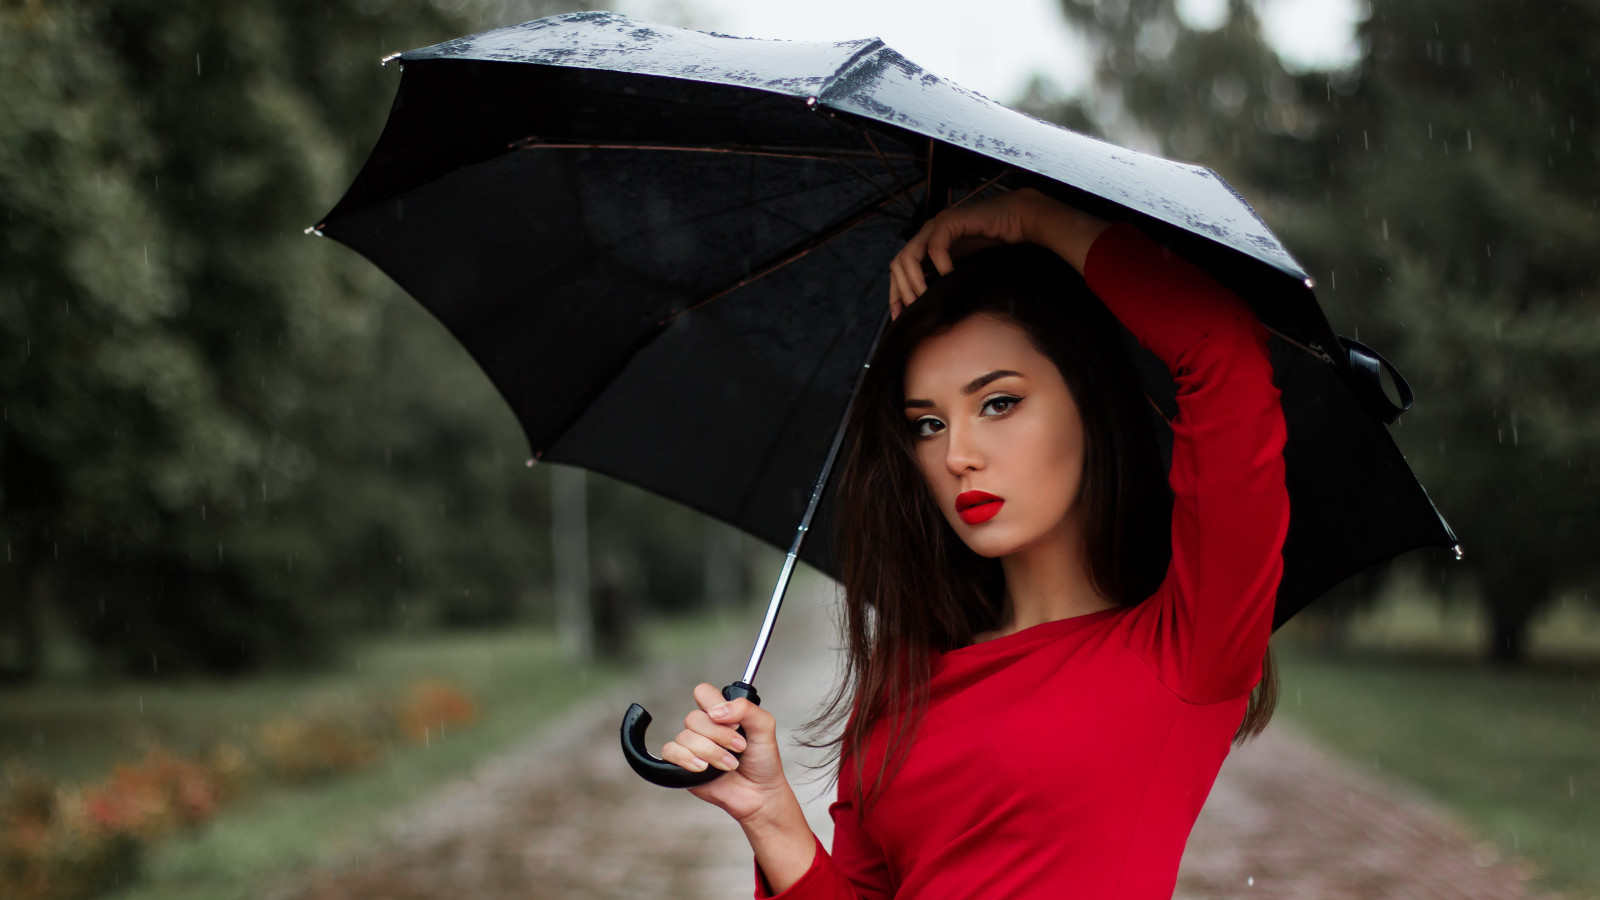 Beauitful girl in a rainy day | 1600x900 wallpaper